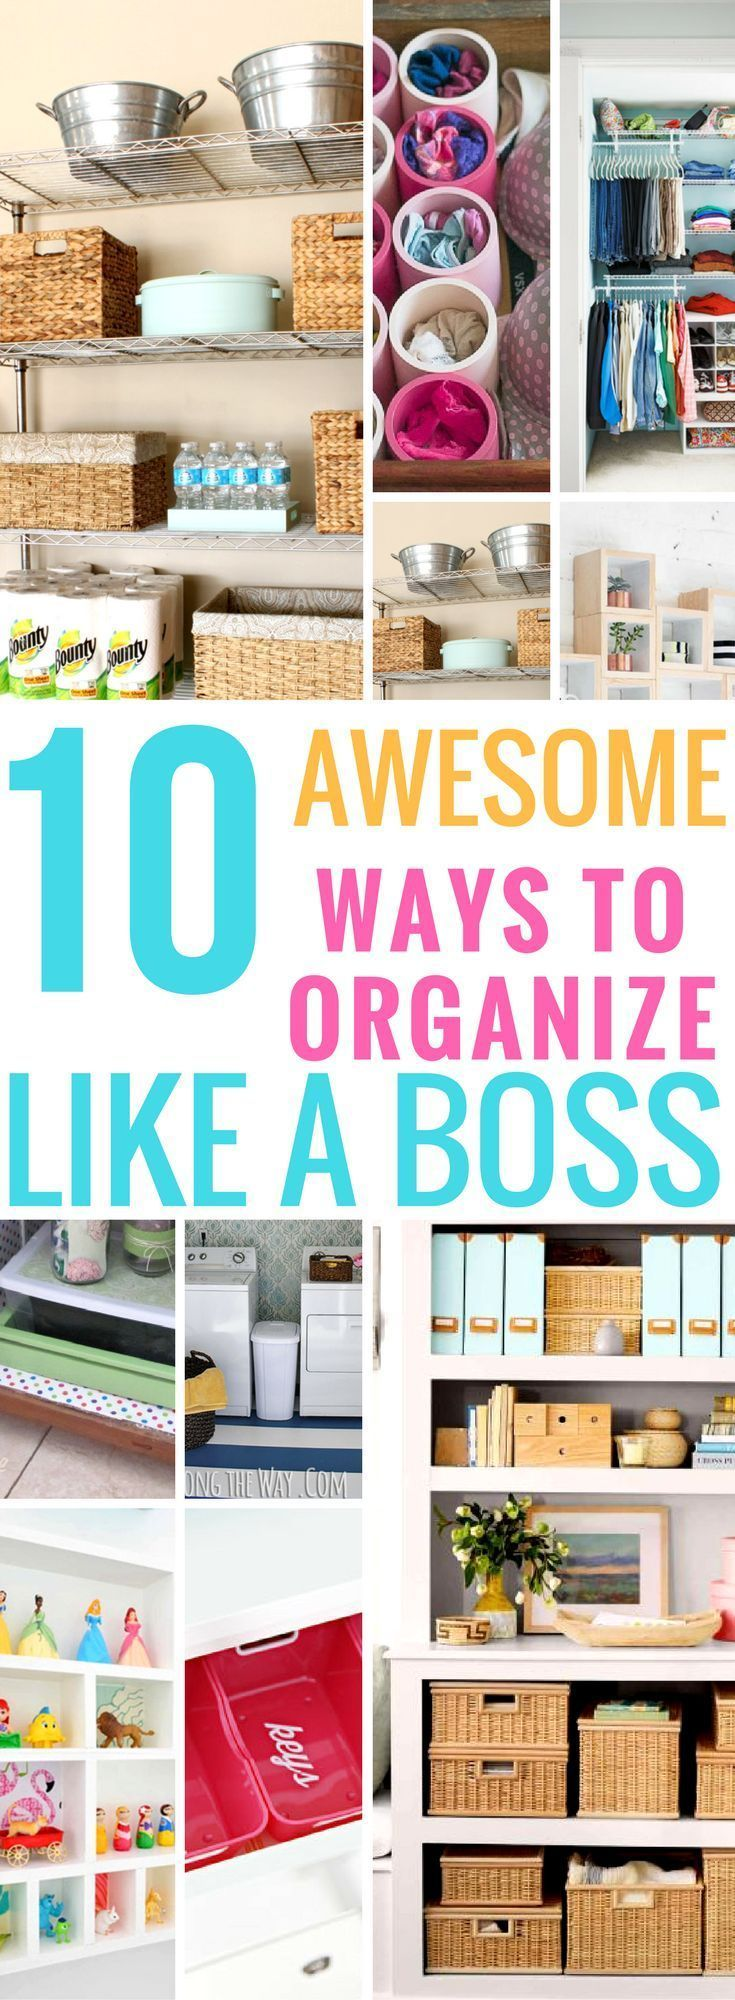 10 Awesome Ways to Organize and Clean Your Home | A Organized Nest on tips on organizing office files, tips for health, tips for family, tips for friends, hidden spaces in your home, tips to organize your bedroom, organizing bills and paperwork at home, tips for relationships, organizing office space at home, tips for marriage, spring cleaning your home, tips for parenting, tips for cooking, de clutter your home, redesign your home, tips for goal setting, tips for spring cleaning, tips on getting organized, decorating your home, tips for food,